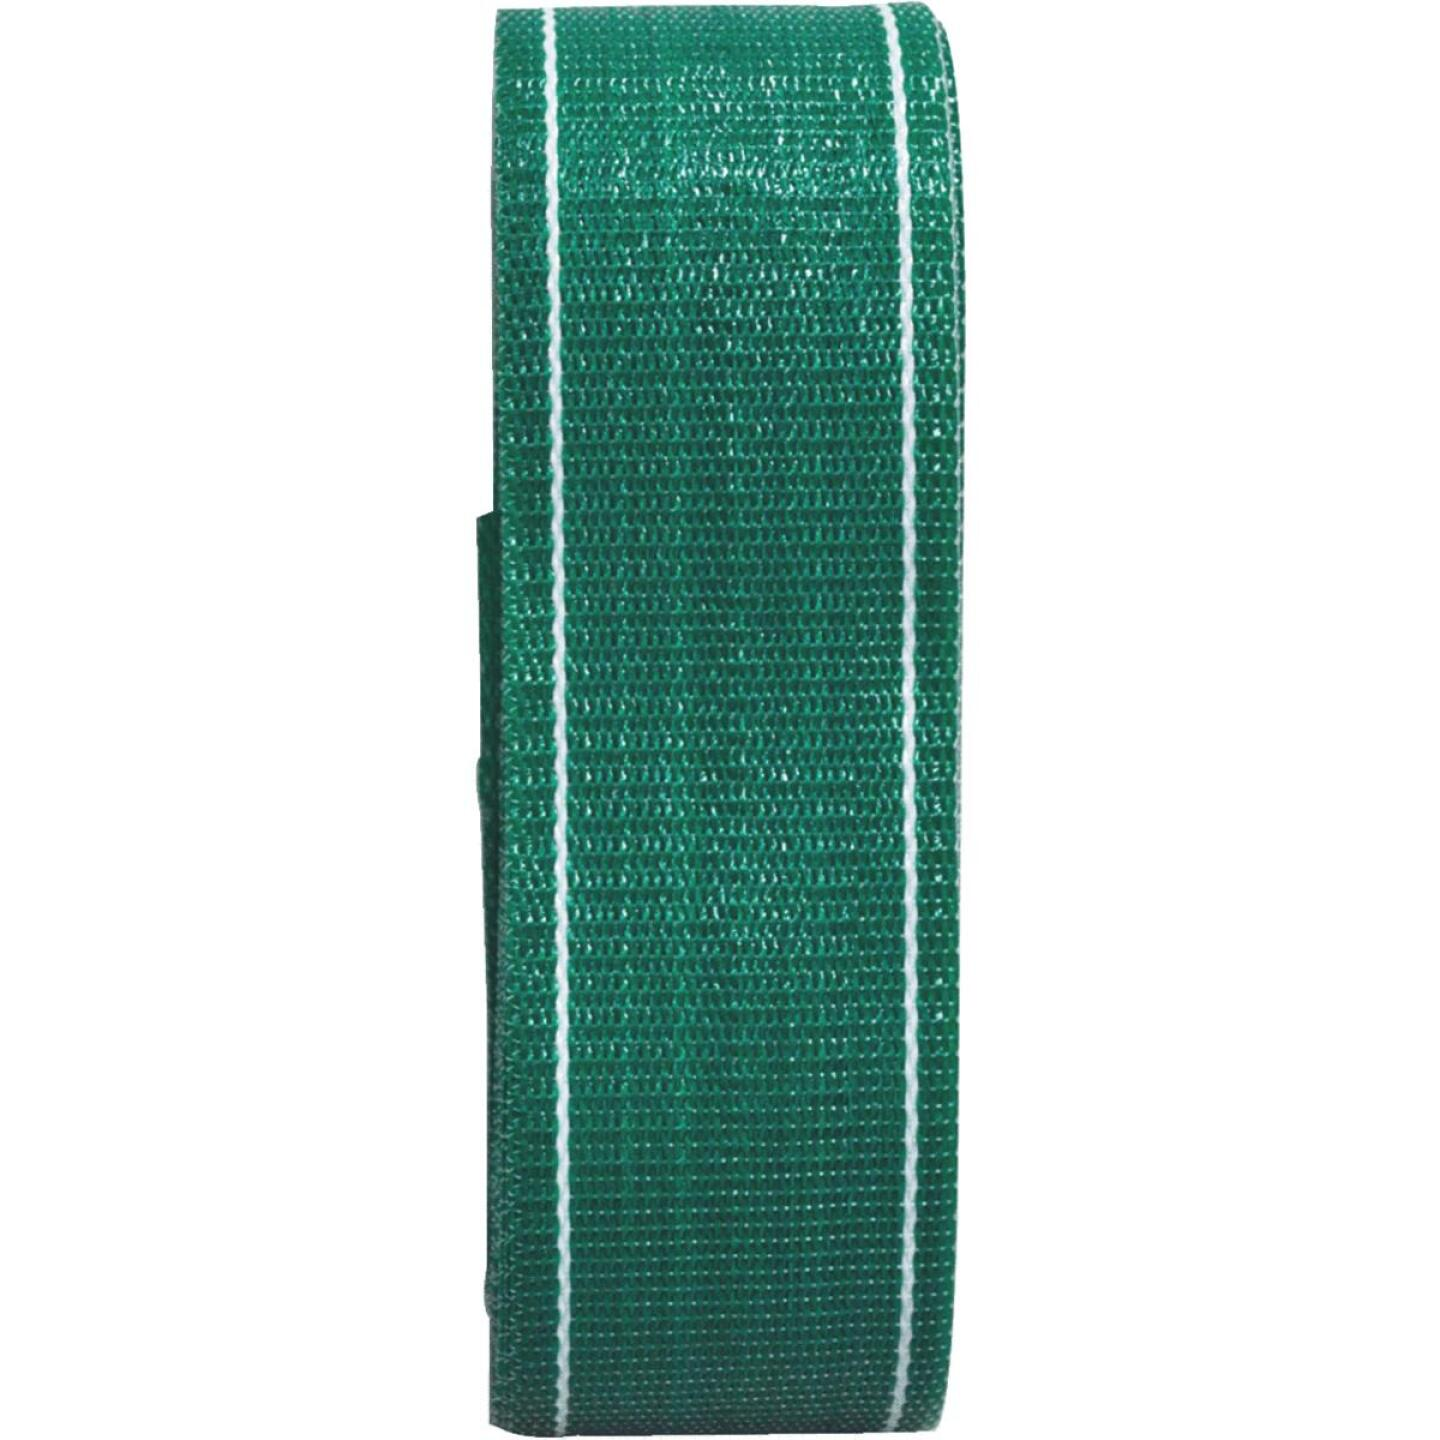 Frost King Green 39 Ft. Outdoor Chair Webbing Image 1